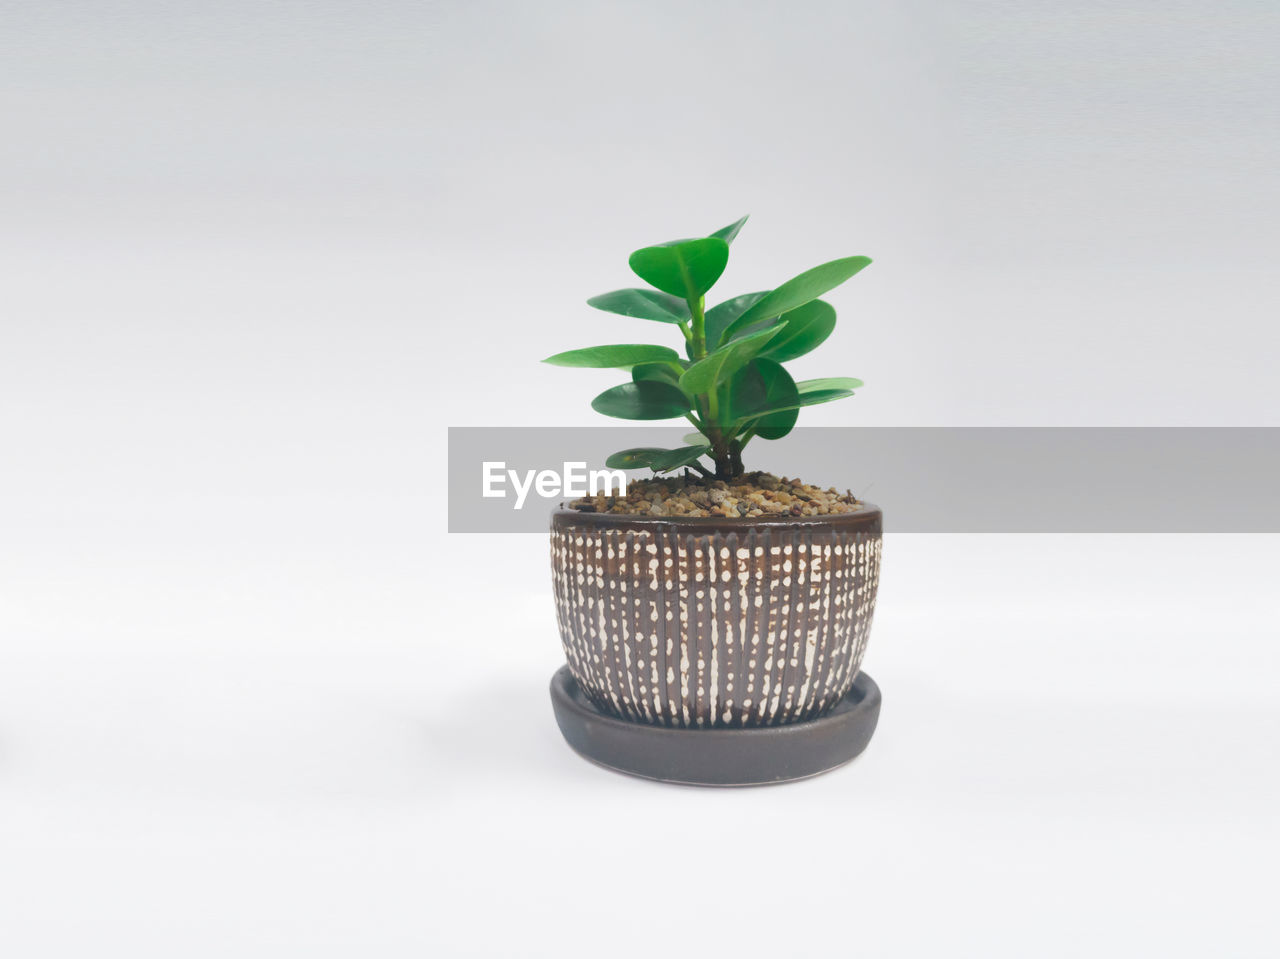 CLOSE-UP OF SMALL PLANT IN POT